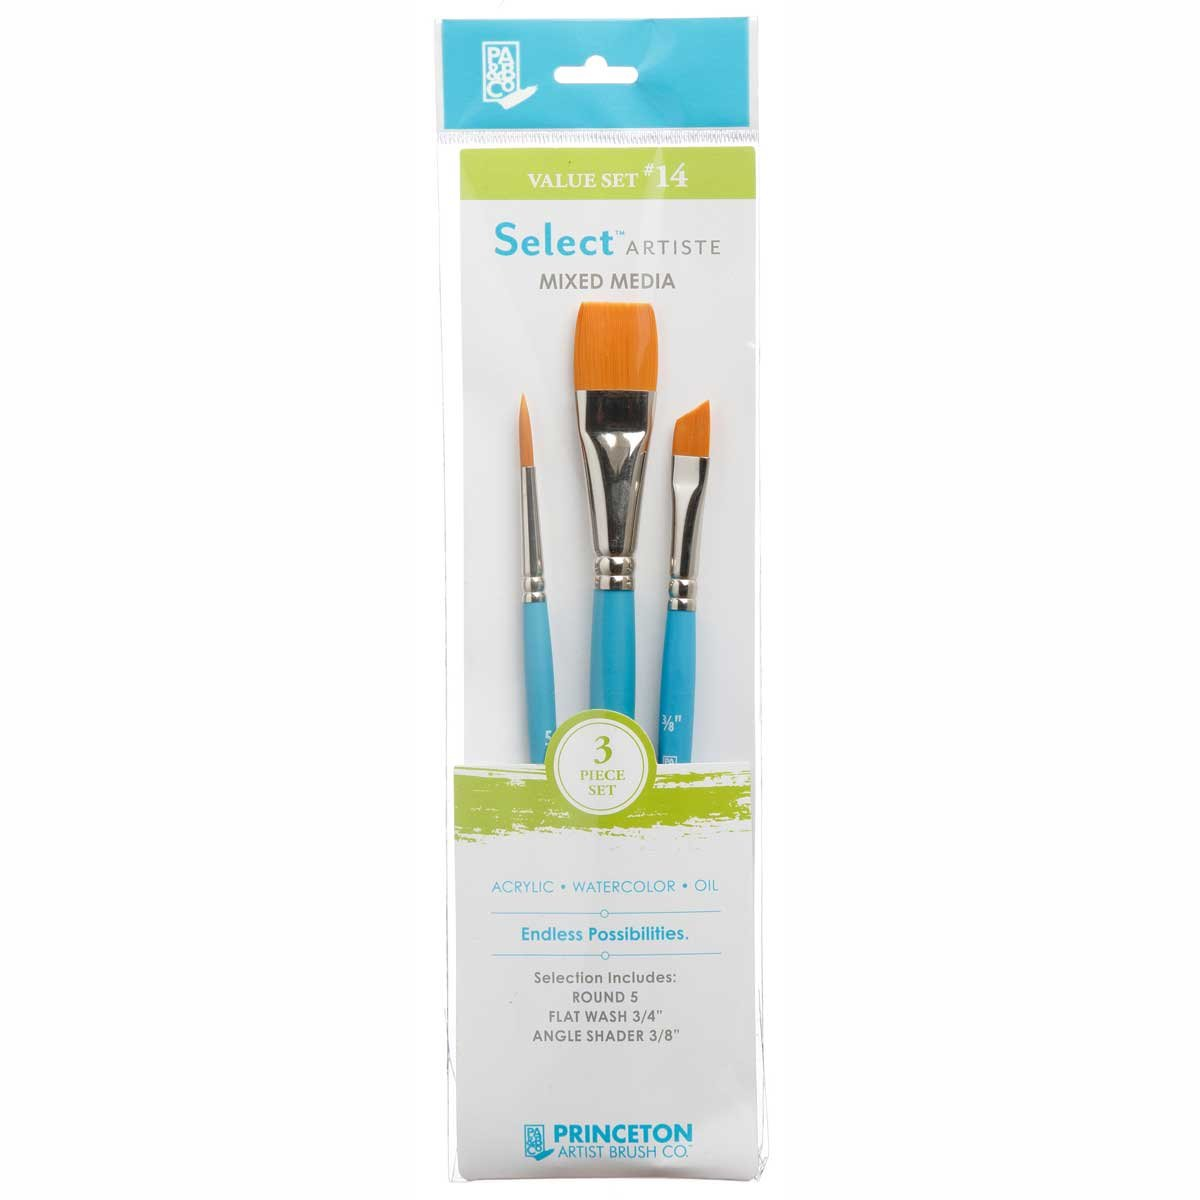 Princeton Select Artiste, Mixed-Media Brushes for Acrylic, Oil, Watercolor Series 3750, 3 Piece Value Set 114